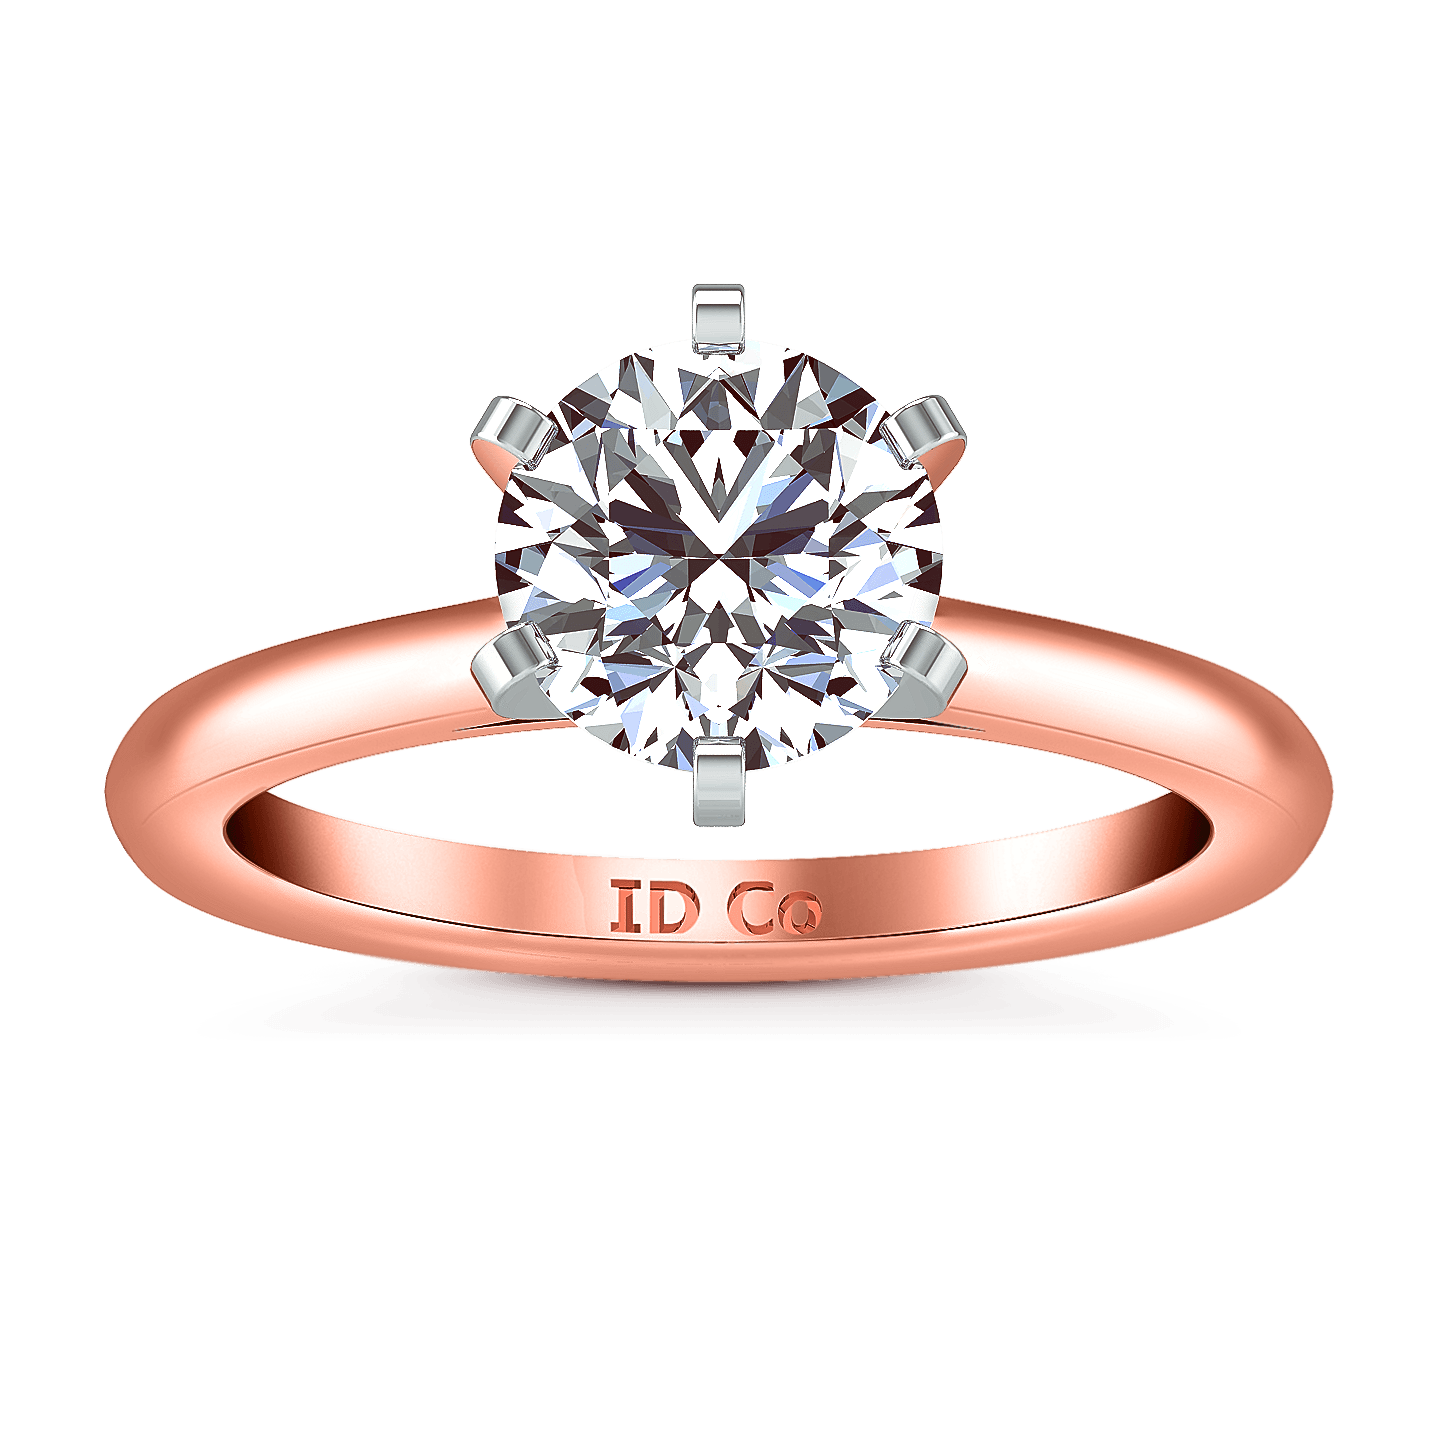 Solitaire Diamond Engagement Ring Petite Cathedral 14k Rose Gold